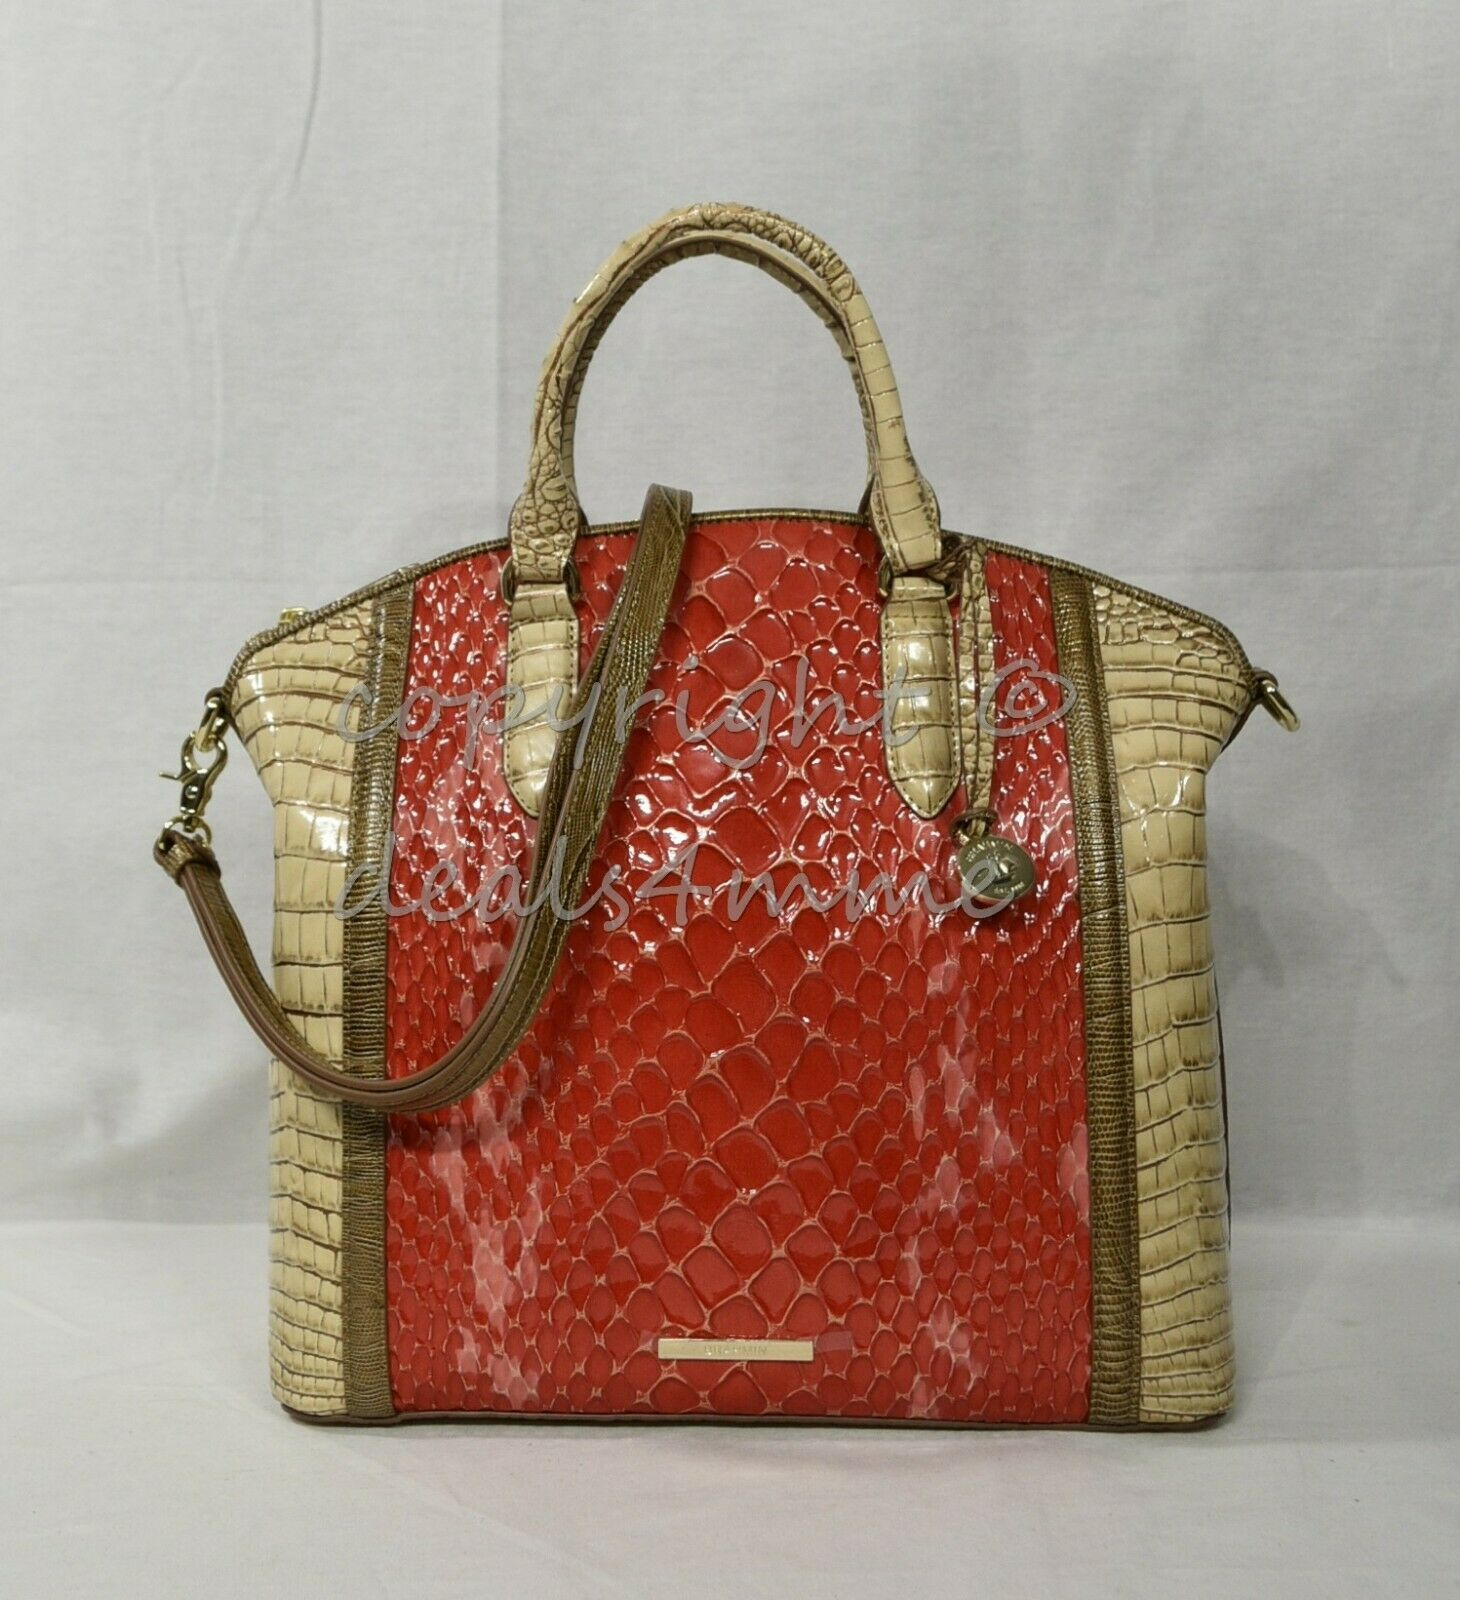 Primary image for NWT Brahmin Large Duxbury Satchel/Shoulder Bag in Candy Apple Carlisle